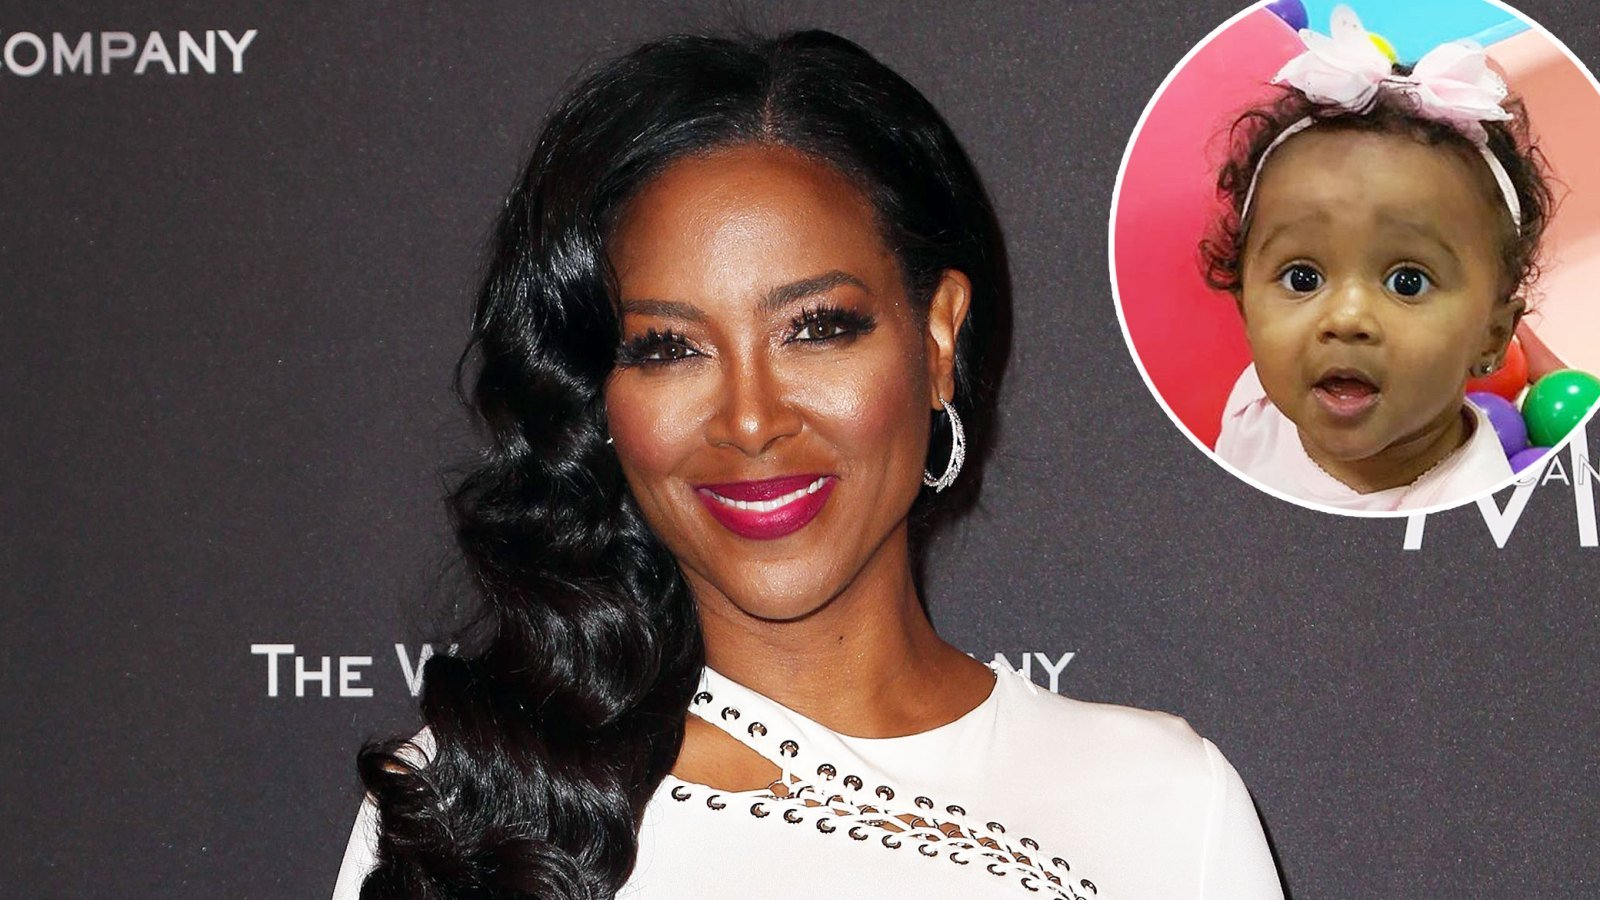 Kenya Moore's Latest Videos Of Her Baby Girl Brooklyn Daly Will Make Your Day